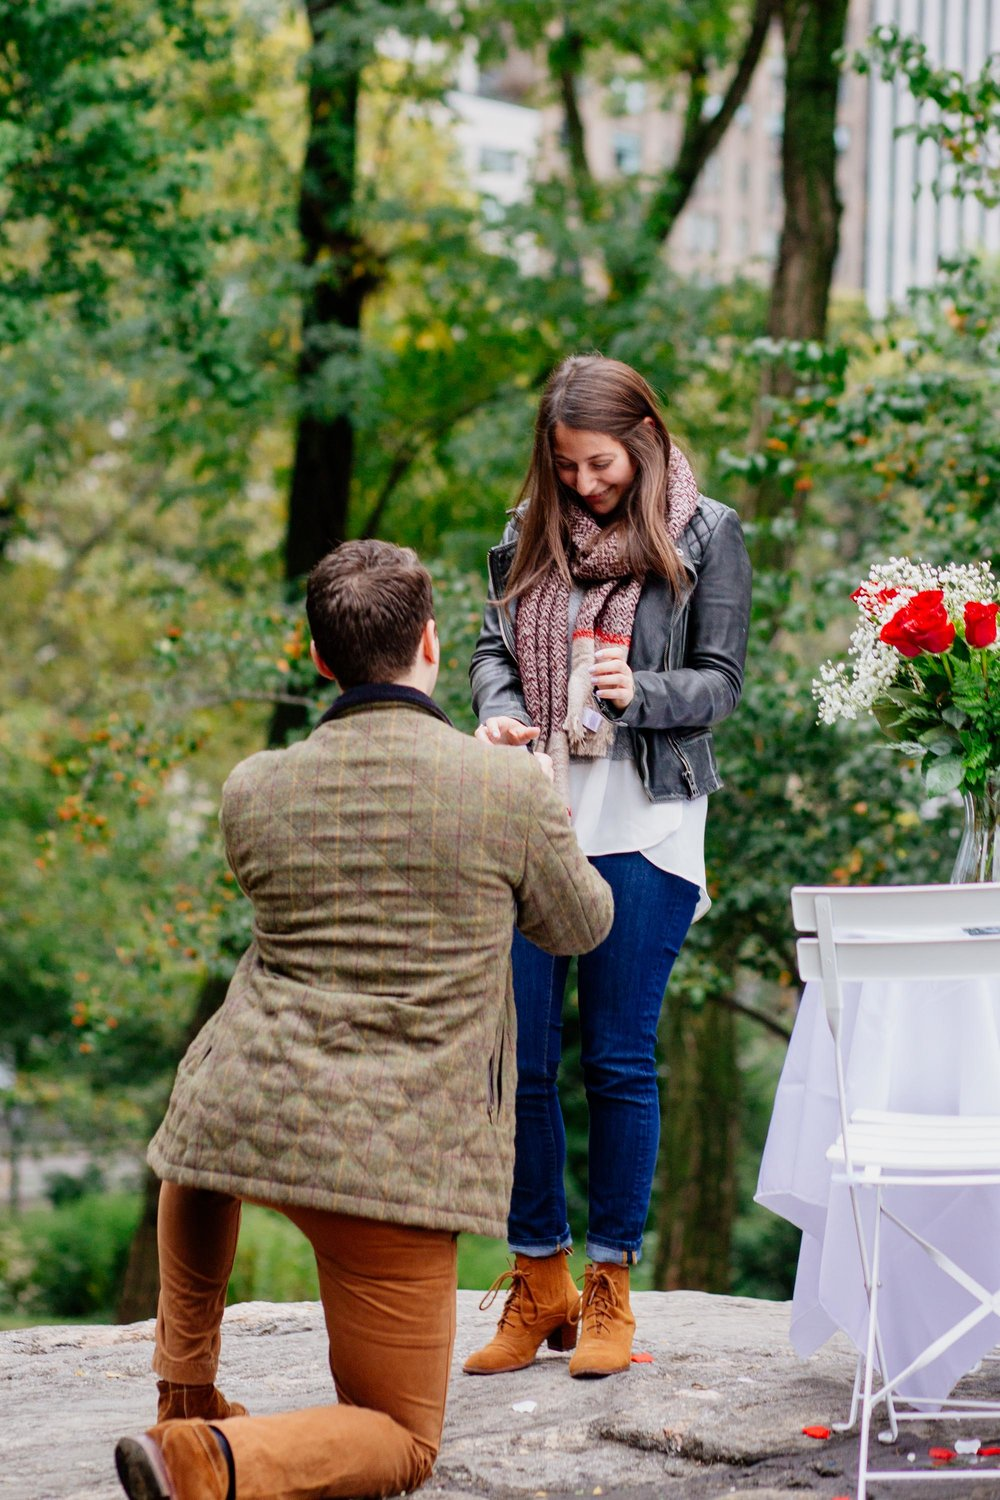 nyc-central-park-proposal-photographer_04.jpg